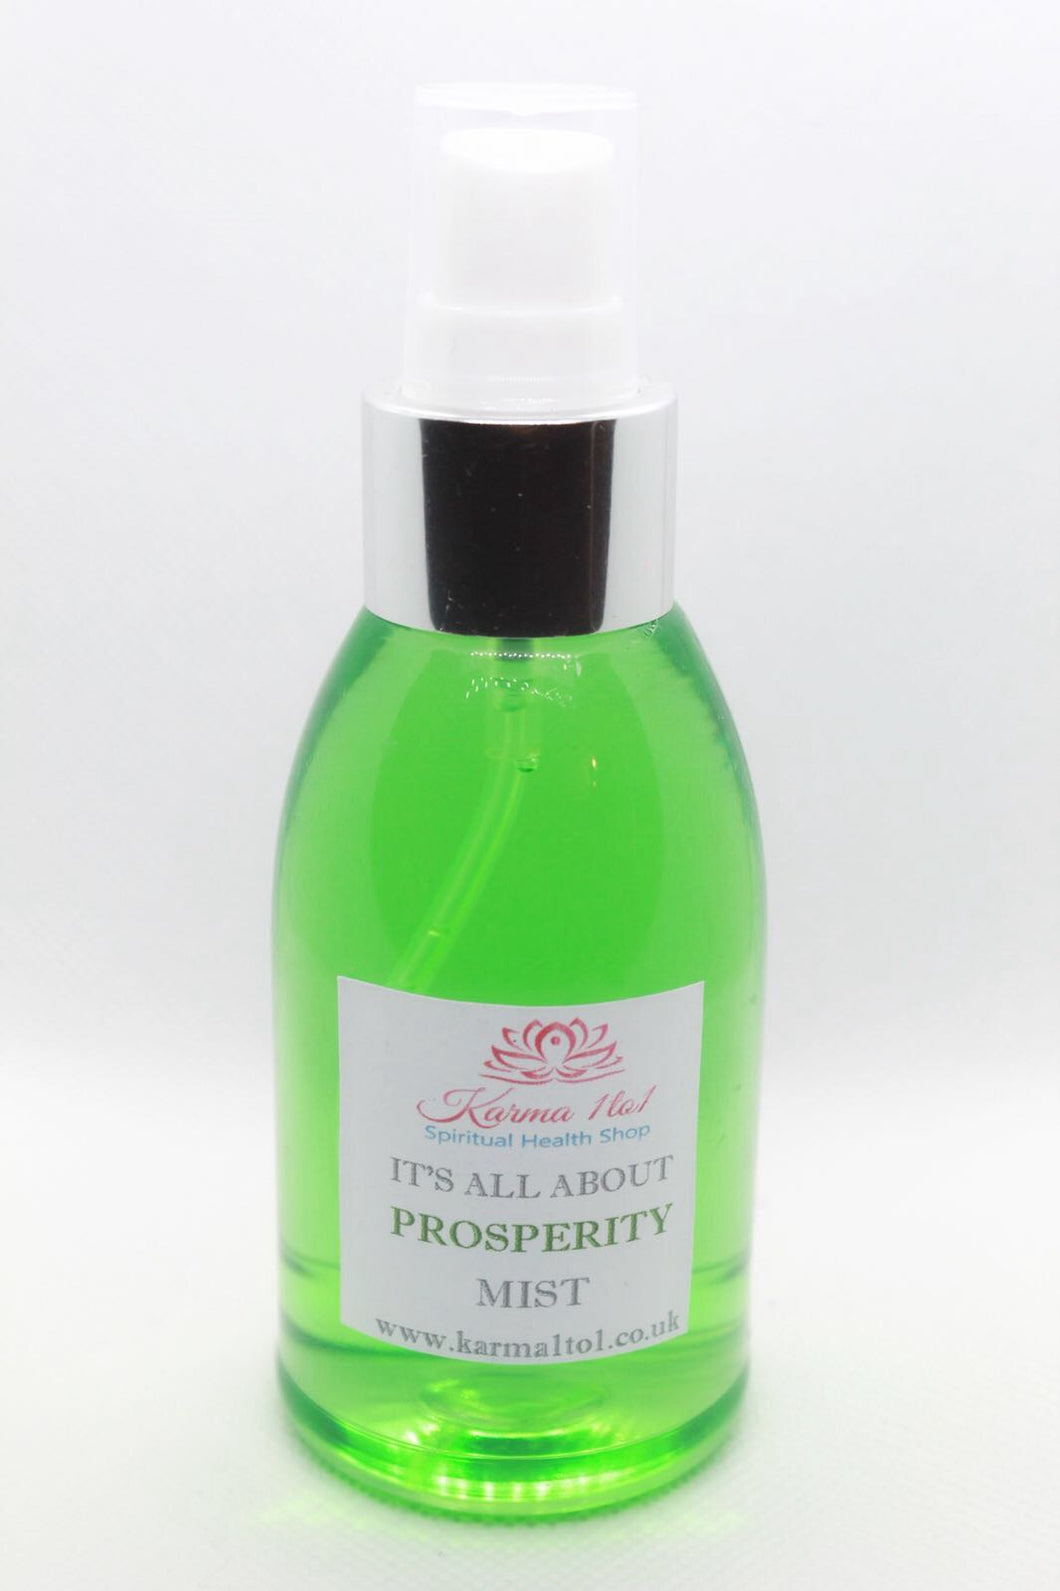 IT'S ALL ABOUT PROSPERITY AURA MIST